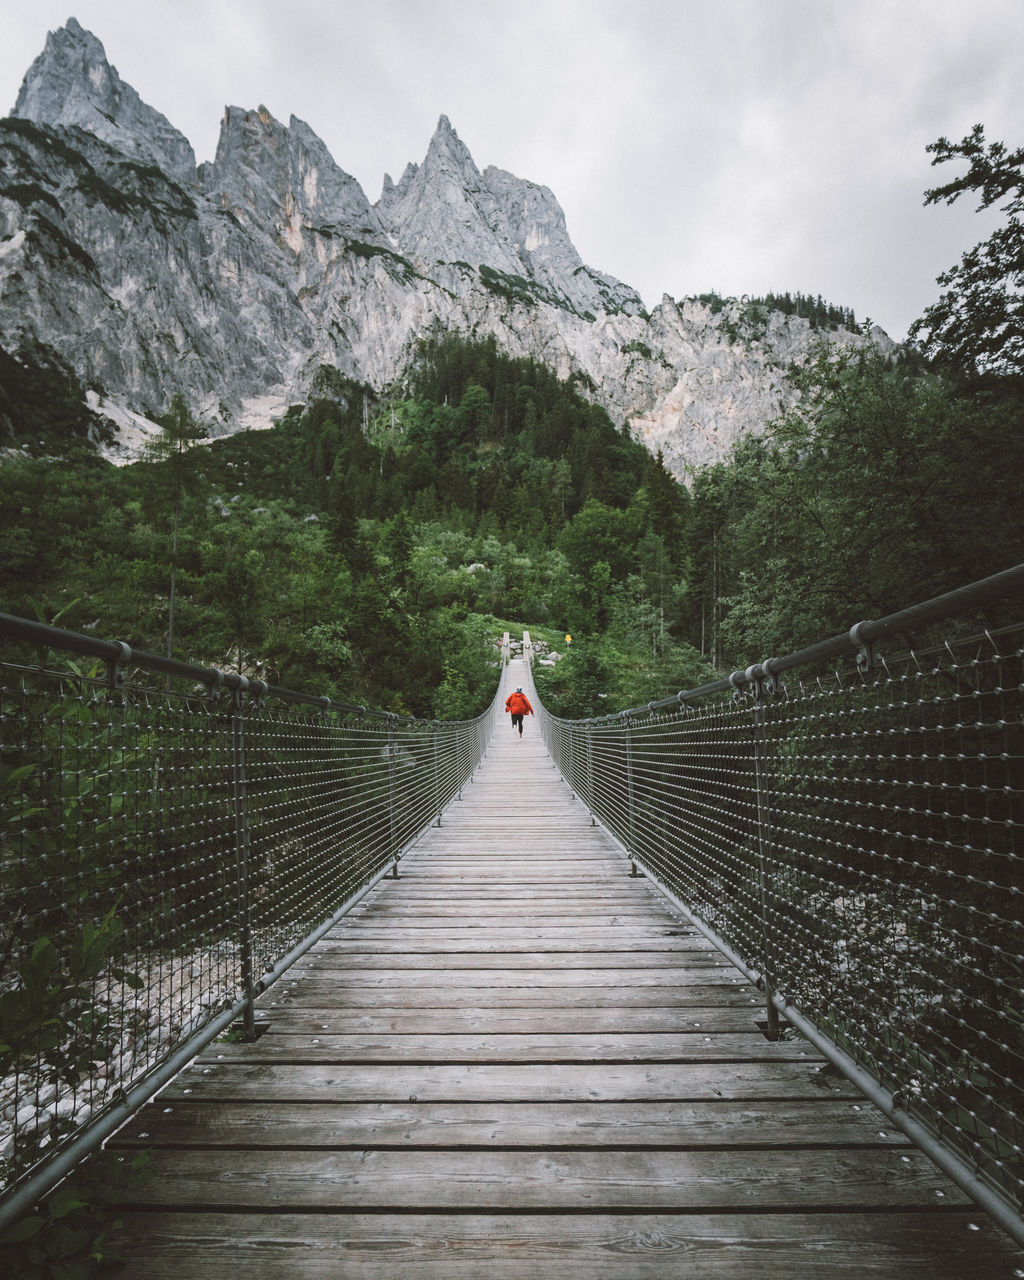 mountain, direction, real people, one person, the way forward, railing, bridge, beauty in nature, connection, footbridge, nature, scenics - nature, architecture, lifestyles, built structure, tree, rear view, bridge - man made structure, wood - material, leisure activity, diminishing perspective, mountain range, outdoors